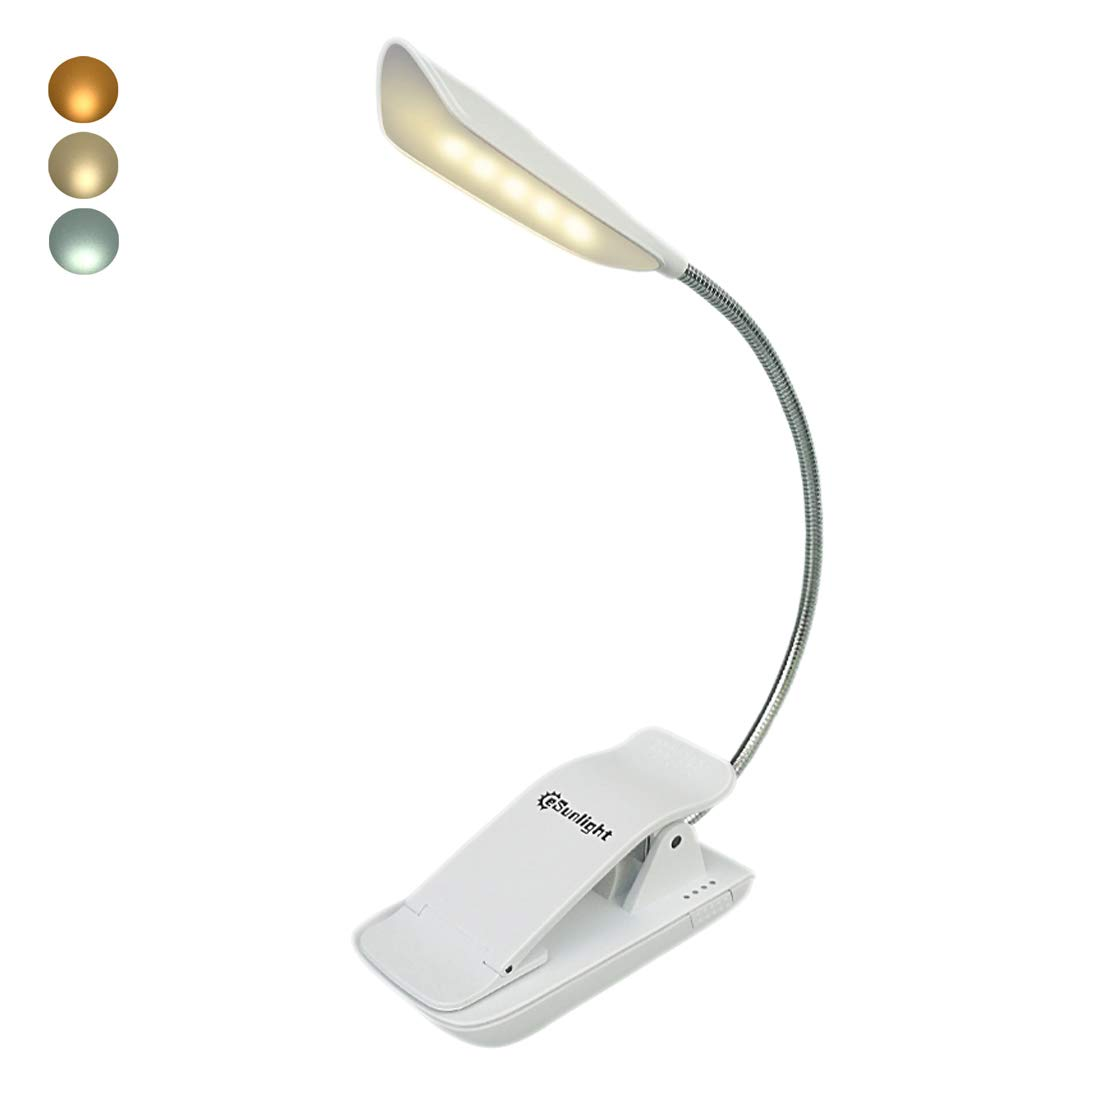 CeSunlight Rechargeable Book Light, Clip on LED Night Reading Lamp, Flexible and Portable Booklight for Kindle, E-Reader in Bed (White) CE1712